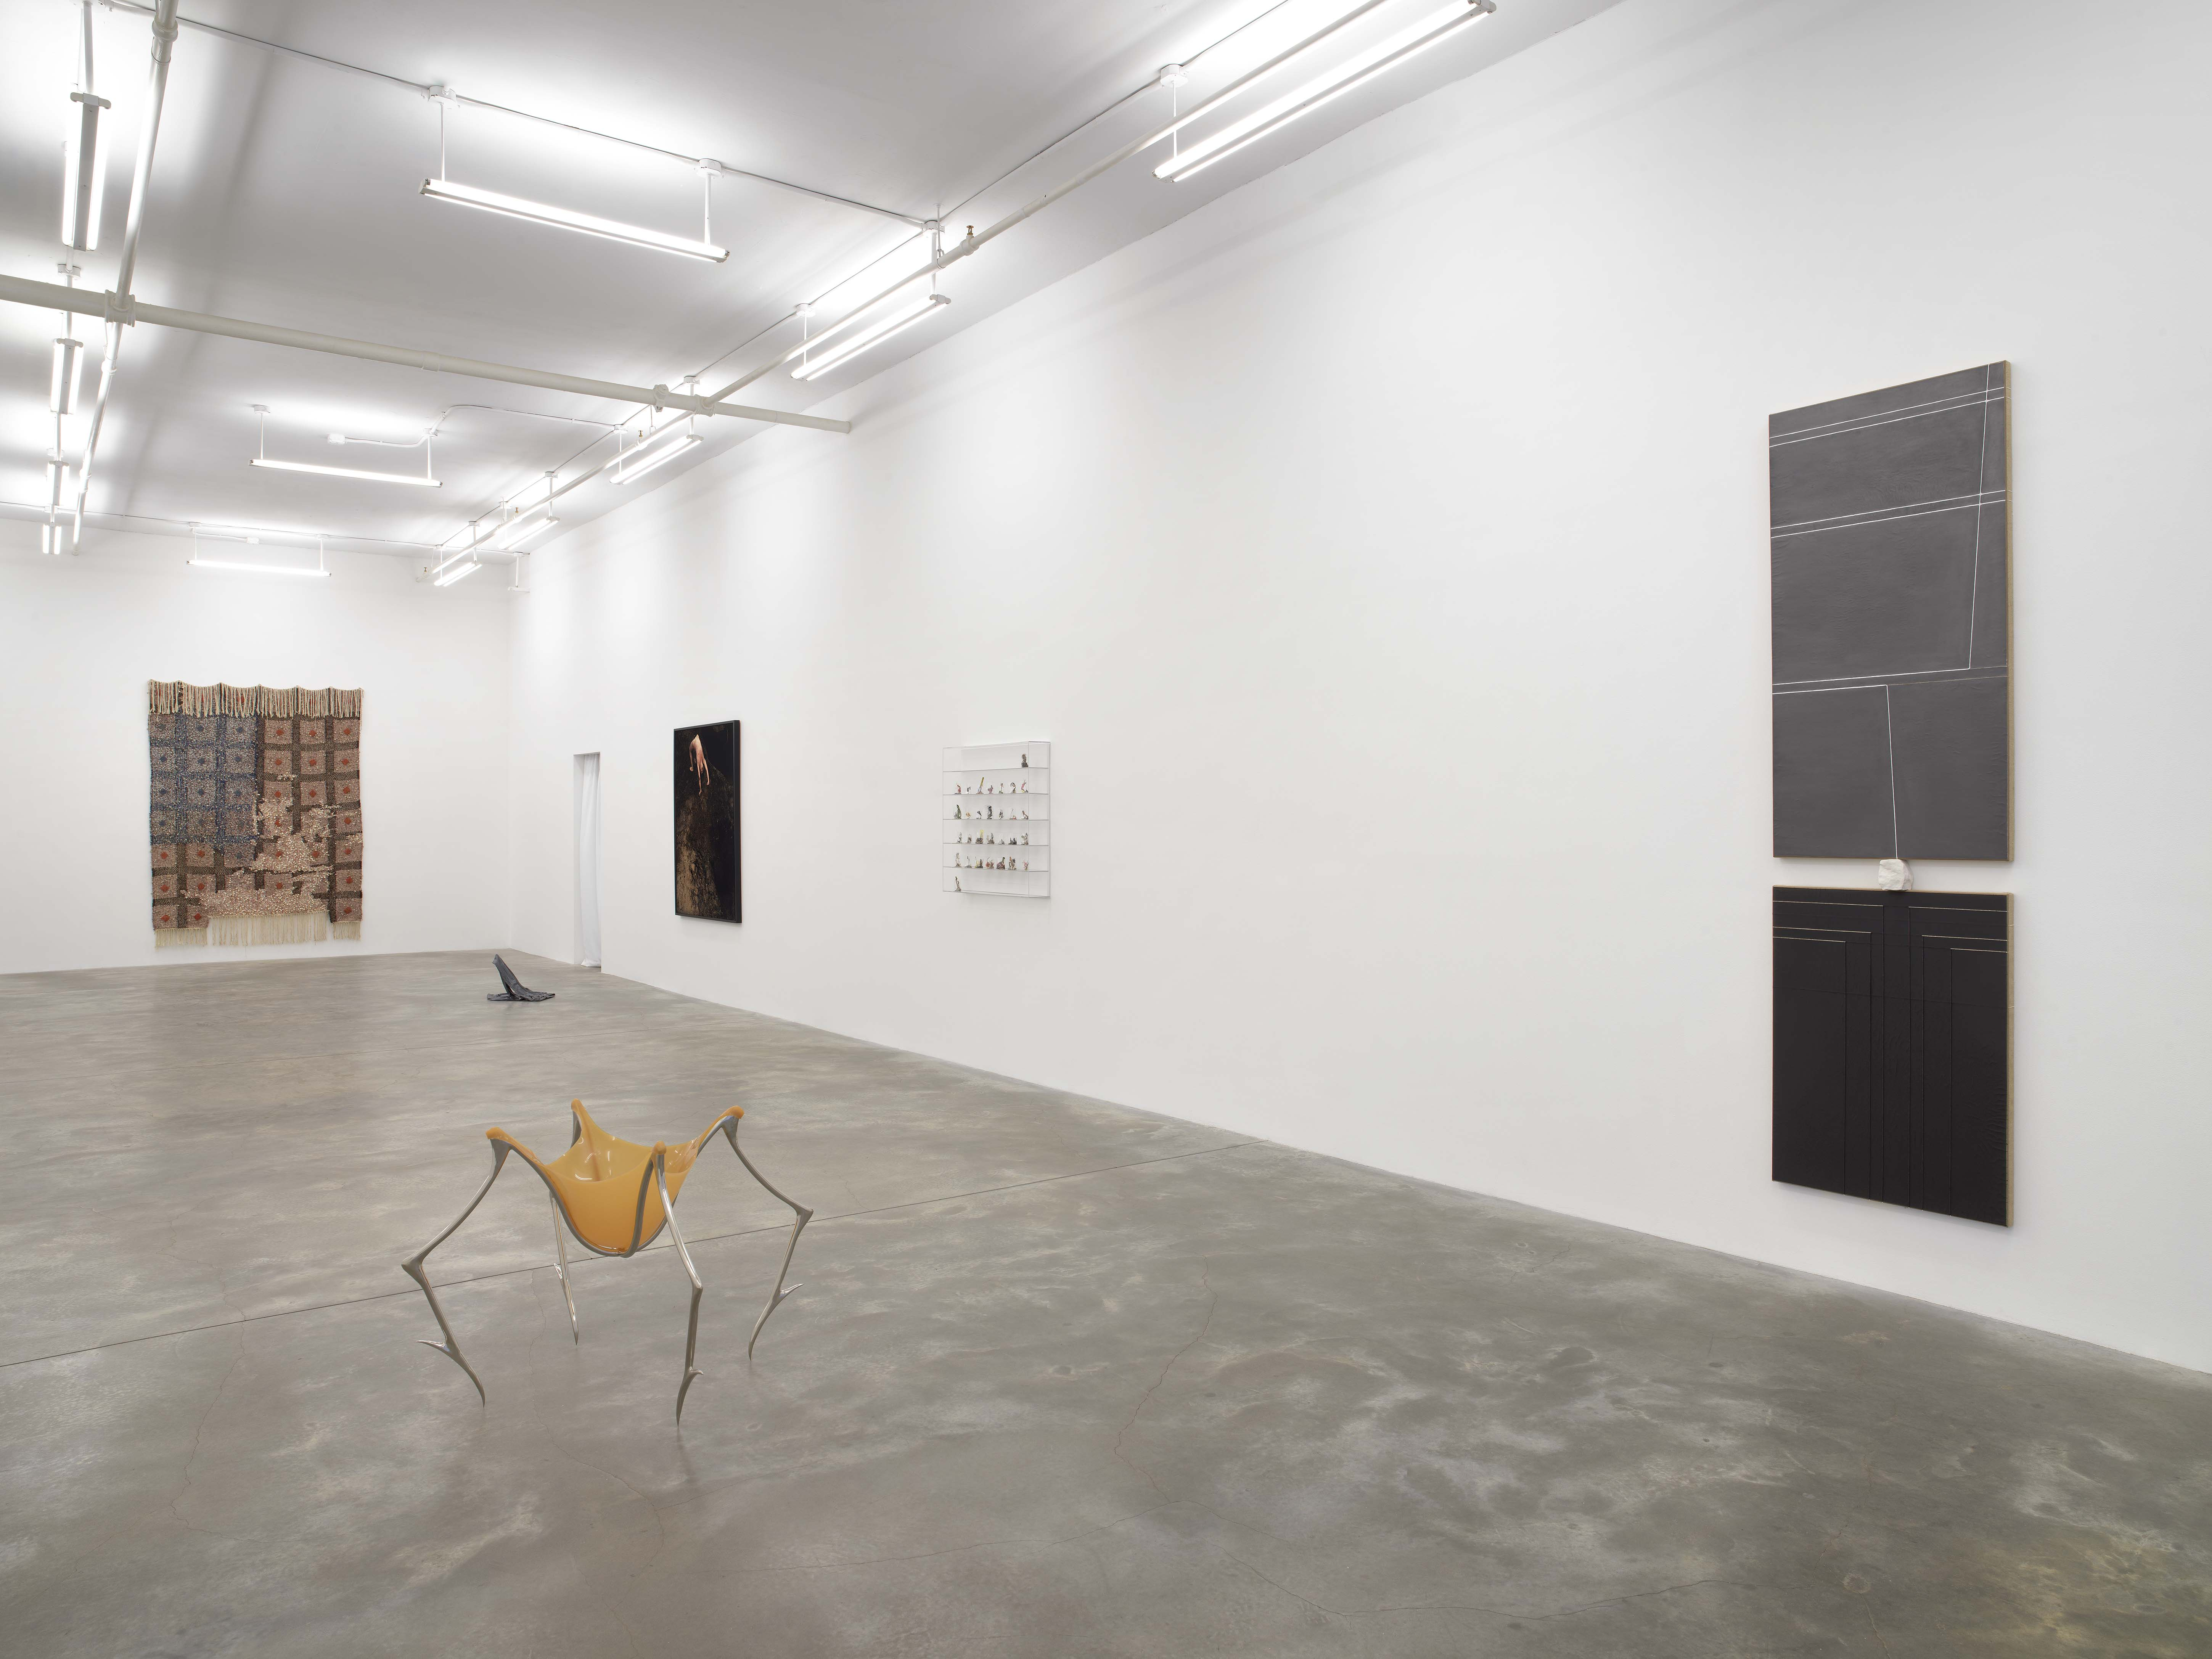 Installation view: Where the Threads Are Worn, March 18 - April 24, 2021, Casey Kaplan, New York, Photo: Dario Lasagni